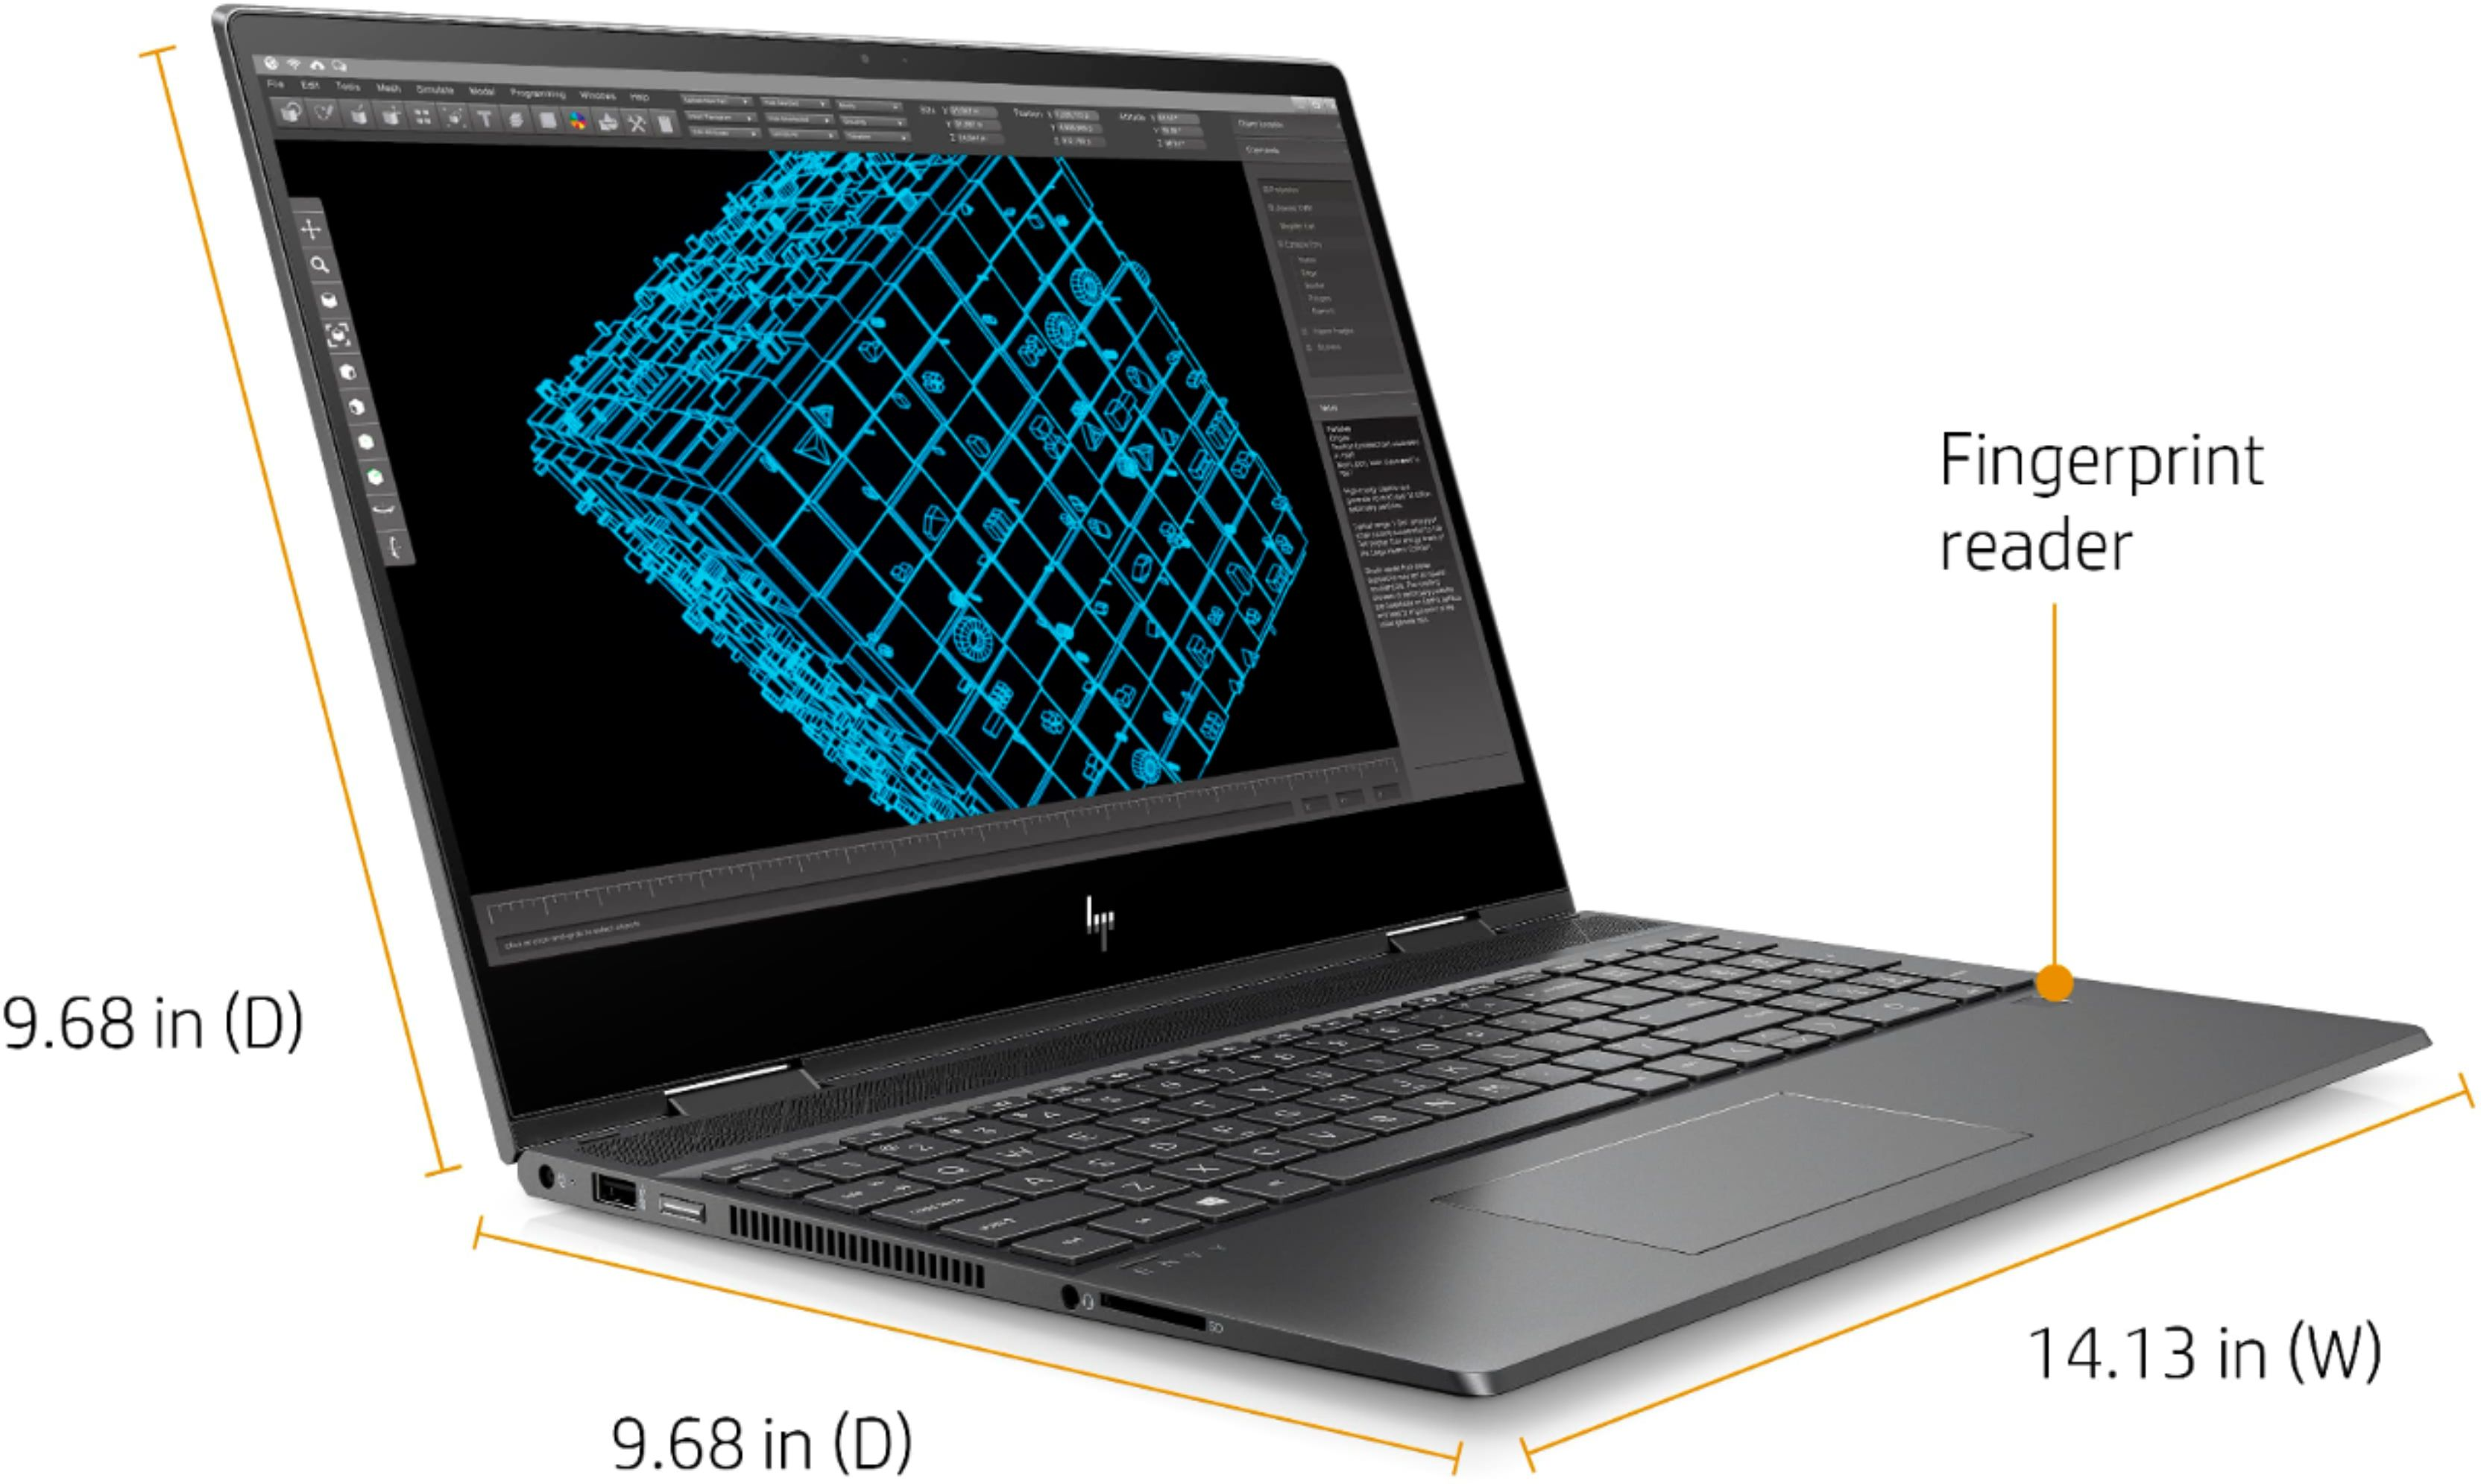 """Left Zoom. HP - ENVY x360 2-in-1 15.6"""" Touch-Screen Laptop - AMD Ryzen 5 - 8GB Memory - 256GB Solid State Drive - Sandblasted Anodized Finish, Nightfall Black."""